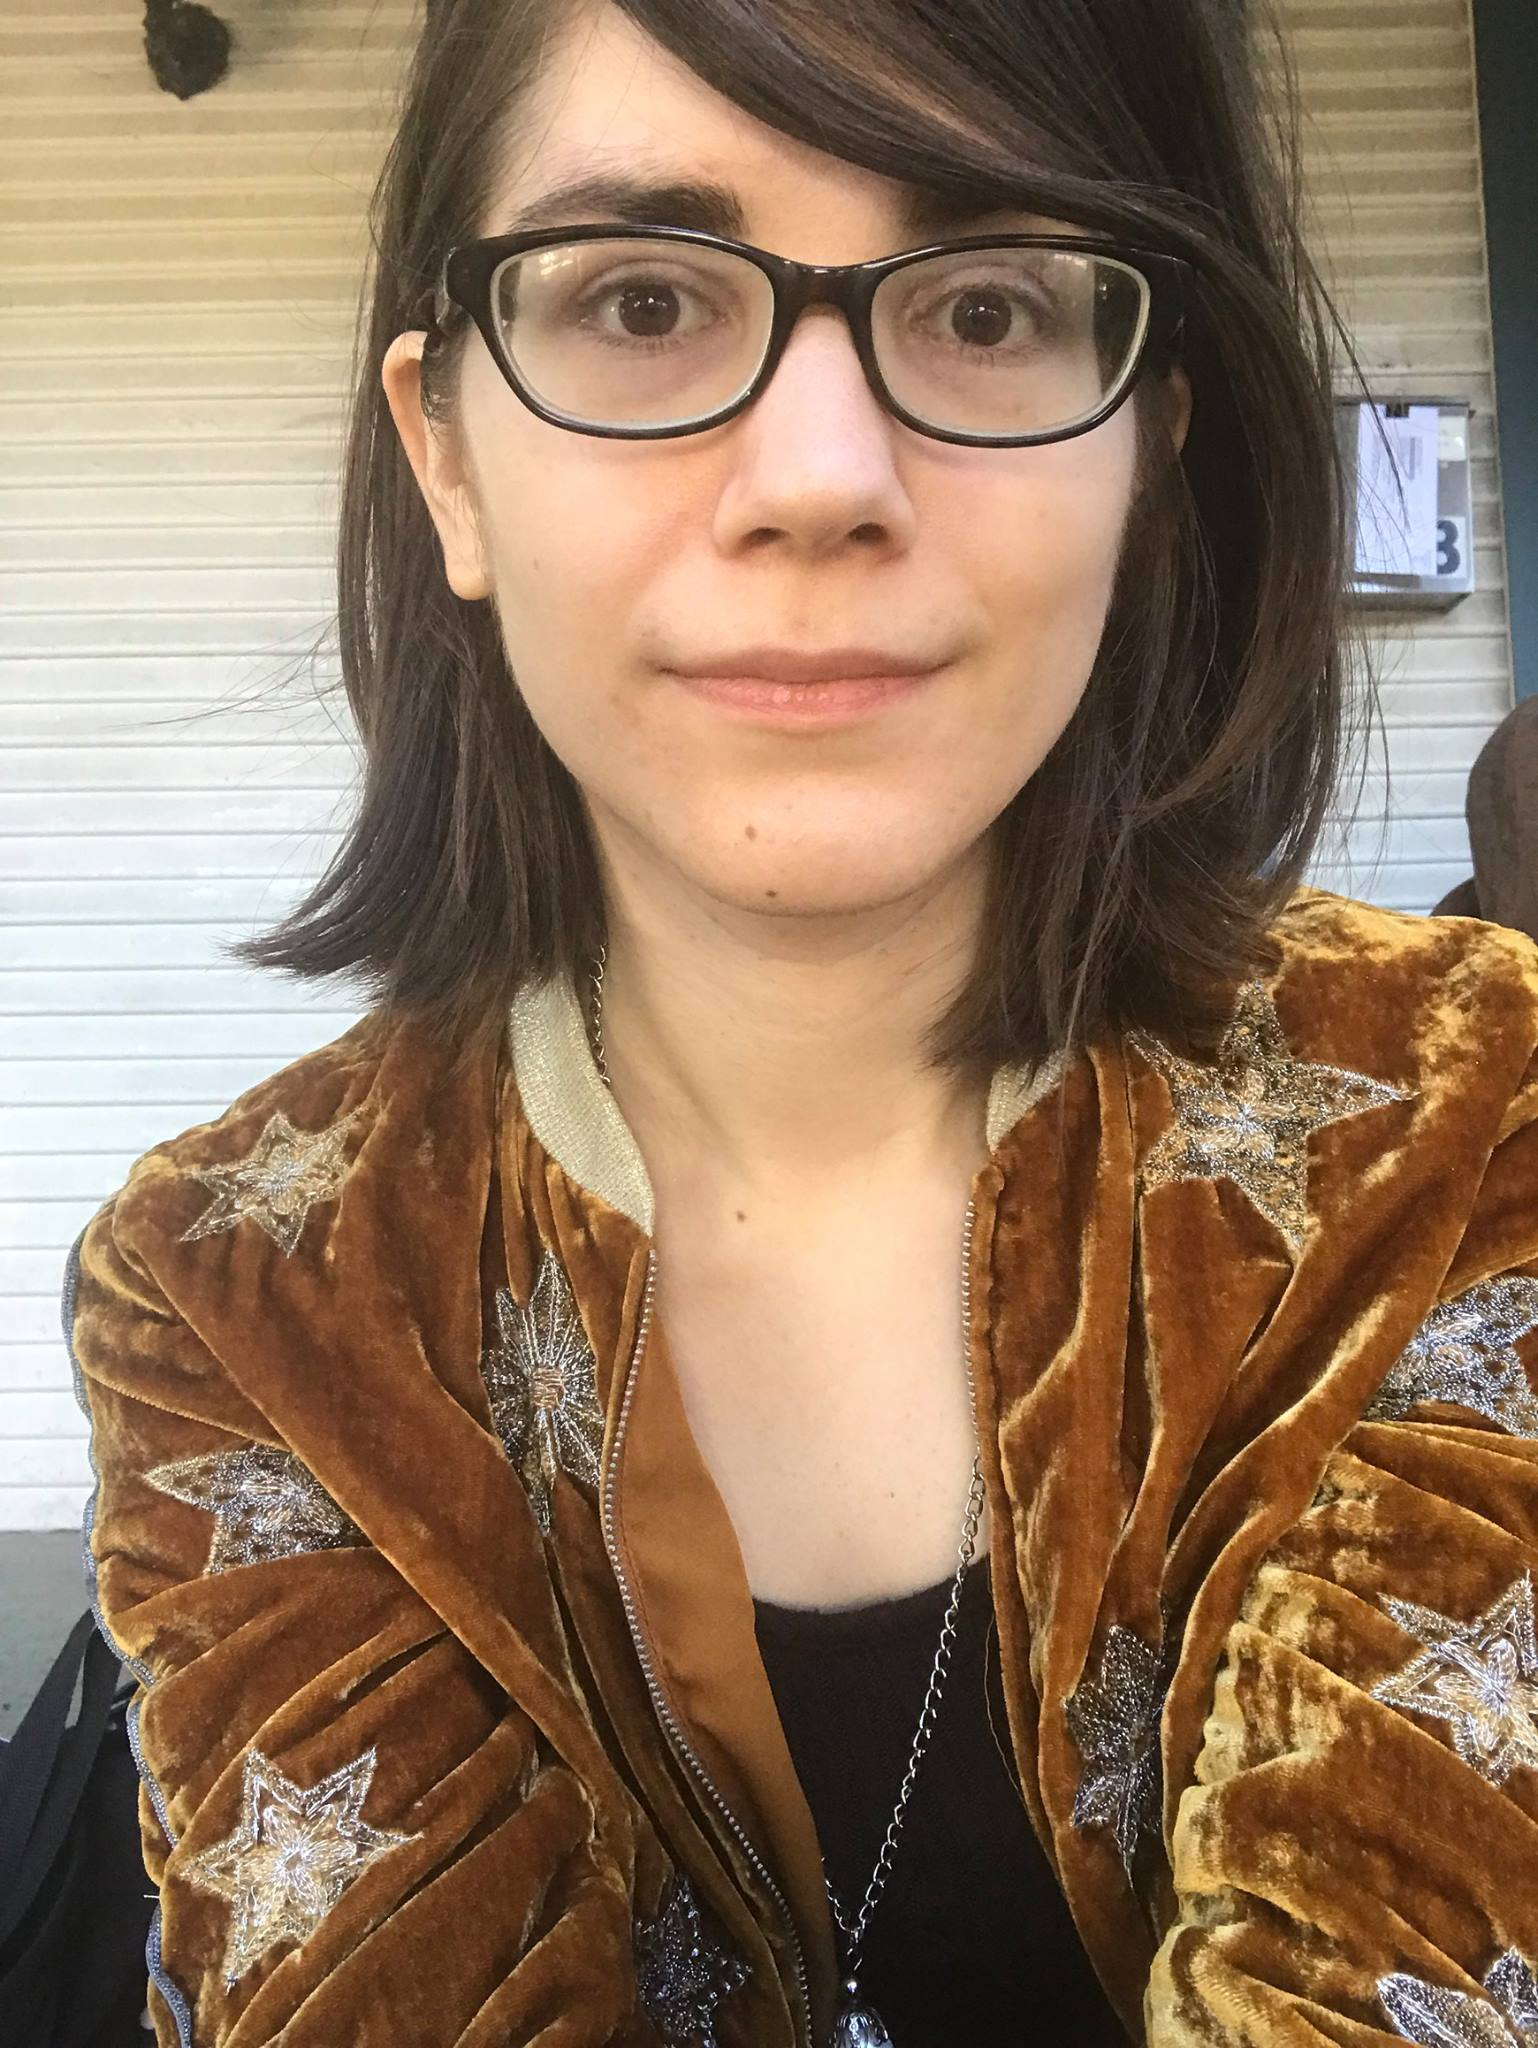 - Cathryn Rose is a contributing editor for Catapult, and her work has appeared in Dream Pop and Susan/The Journal. She's reading The Meat & Spirit Plan by Selah Saterstrom.